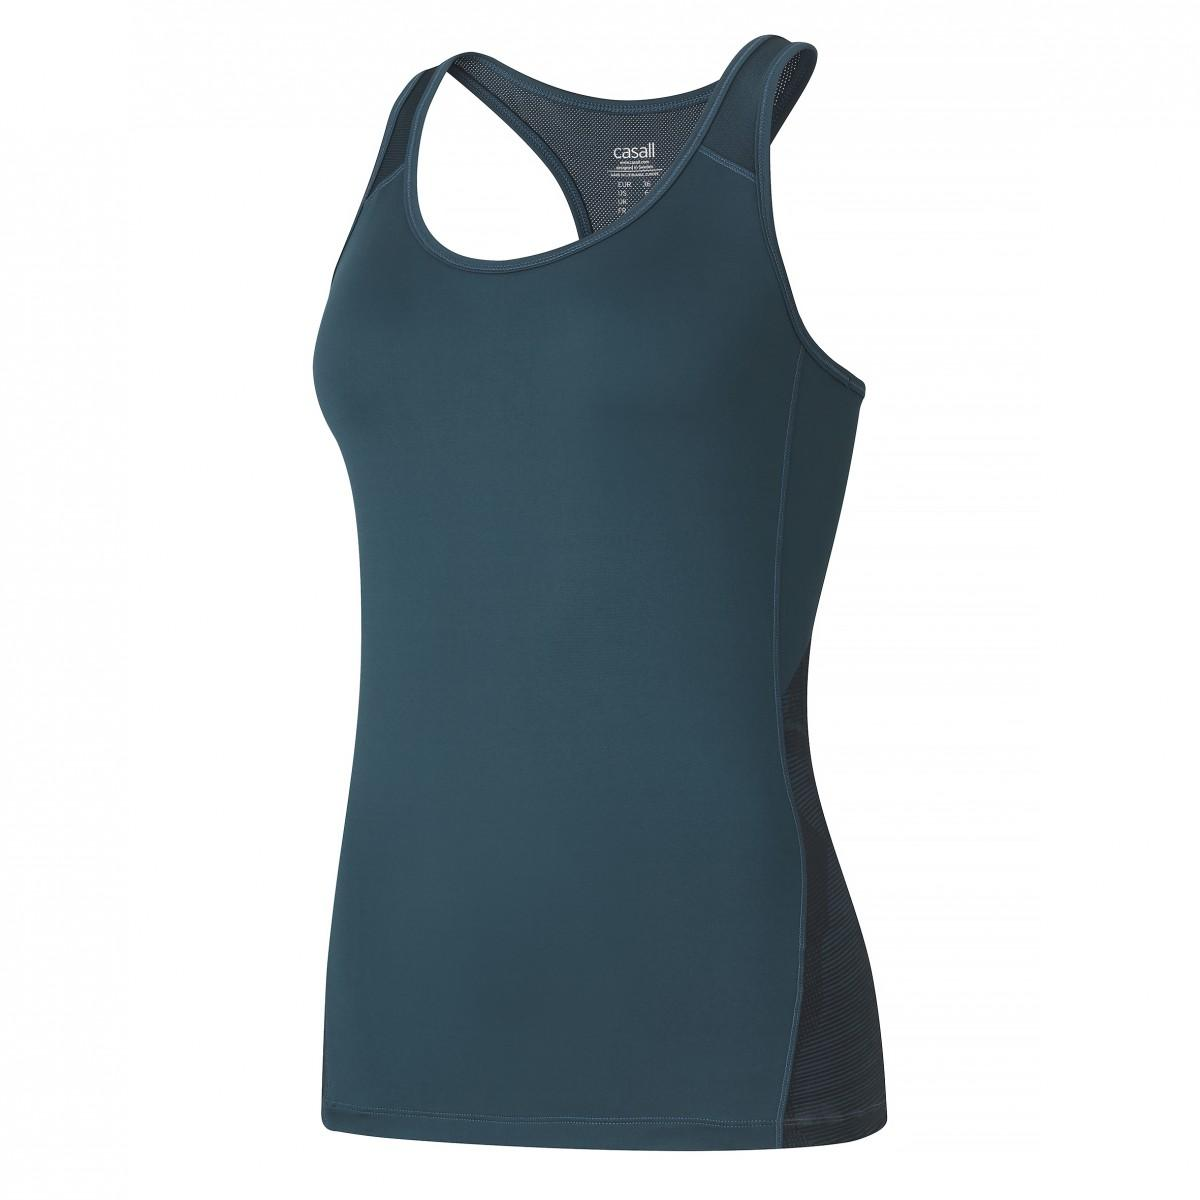 Casall Sublime Racerback